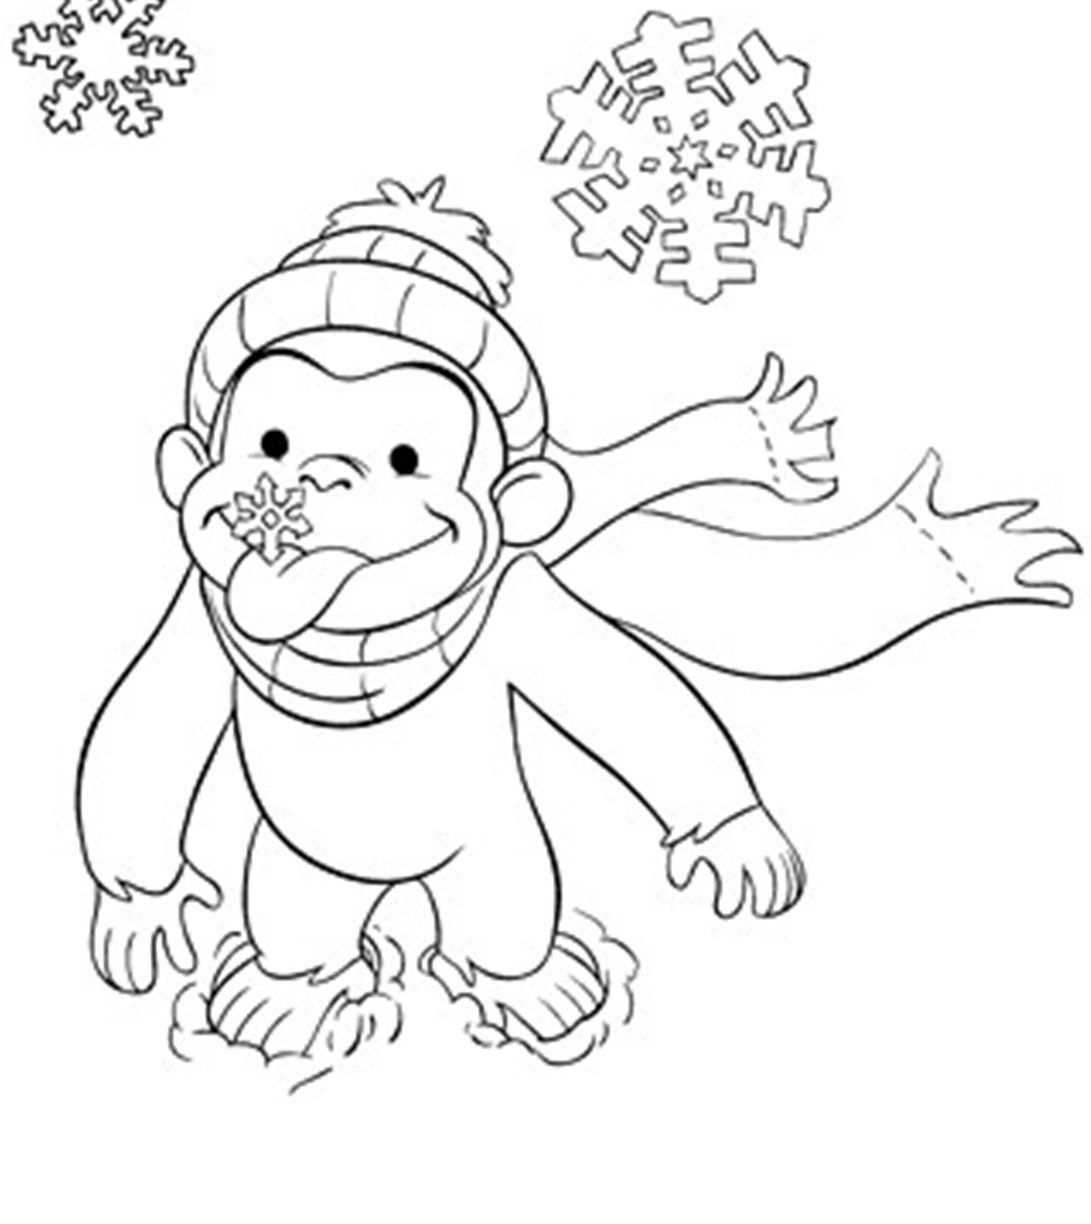 Curious George Christmas Coloring Pages At Getdrawings